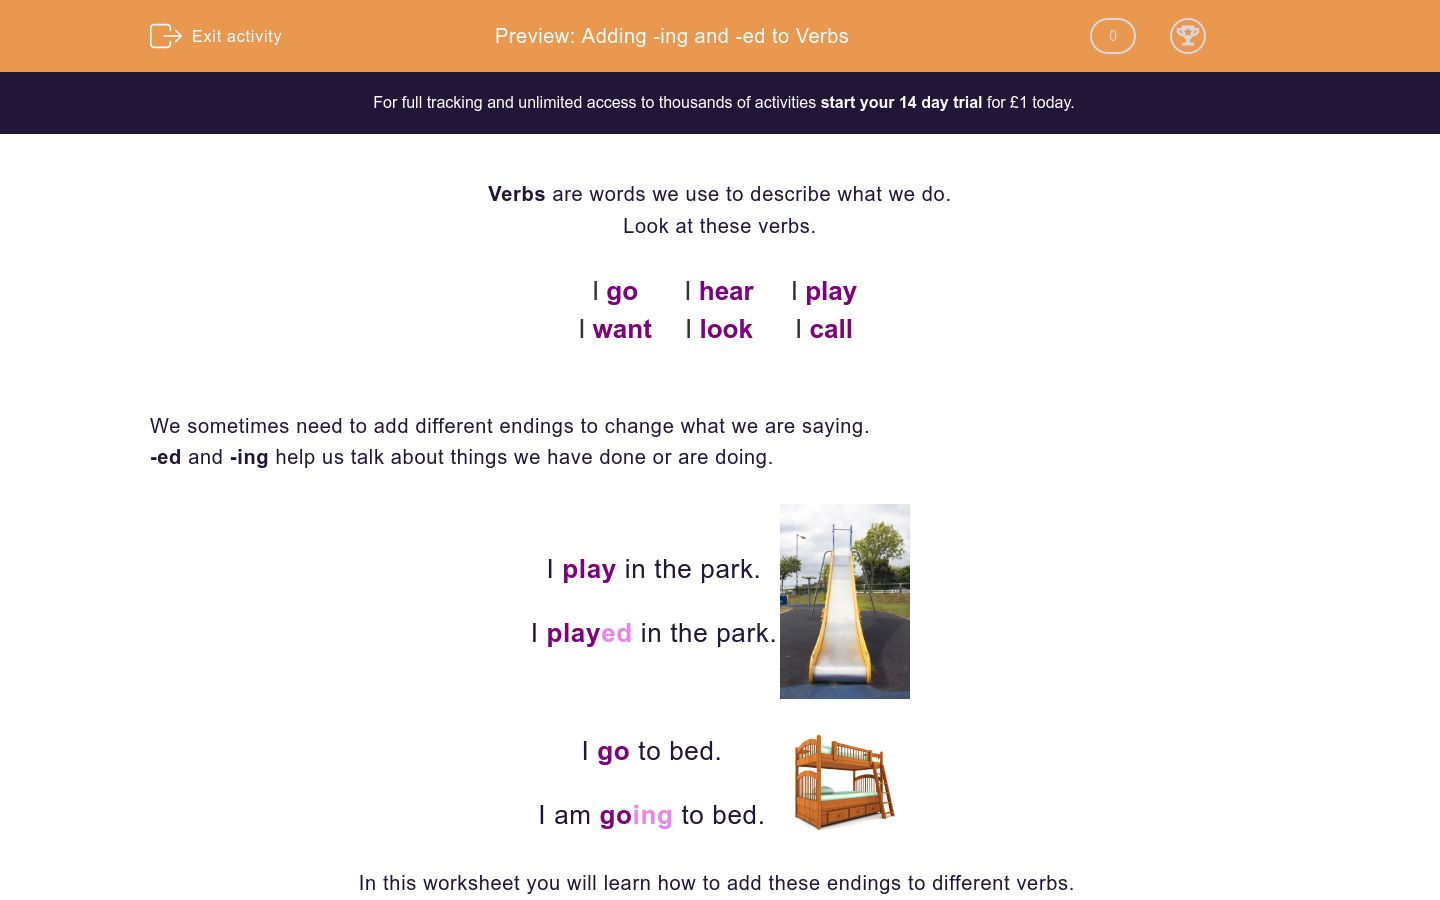 'Adding -ing and -ed to Verbs' worksheet